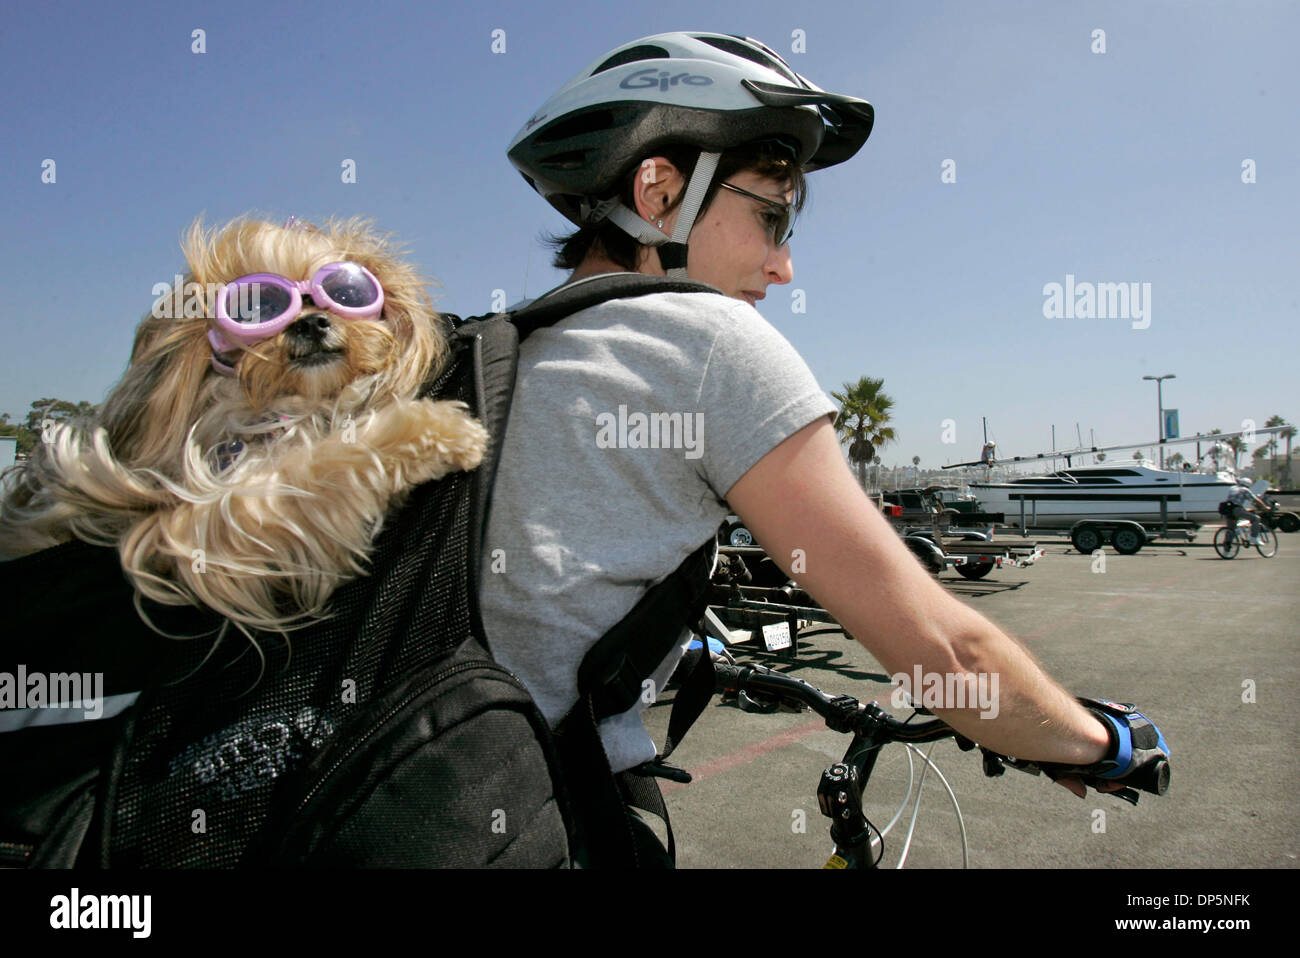 Sep 20, 2006; Oceanside, CA, USA; Oceanside resident ANN WATTS has her small dog named 'Shanti', that's wearing sunglasses, in her backpack as she takes a bike ride along the water at the Oceanside Harbor. The dog is a Yorki/Shih tzu  mix and seems to be enjoying itself. Mandatory Credit: Photo by Charlie Neuman/SDU-T/ZUMA Press. (©) Copyright 2006 by SDU-T - Stock Image